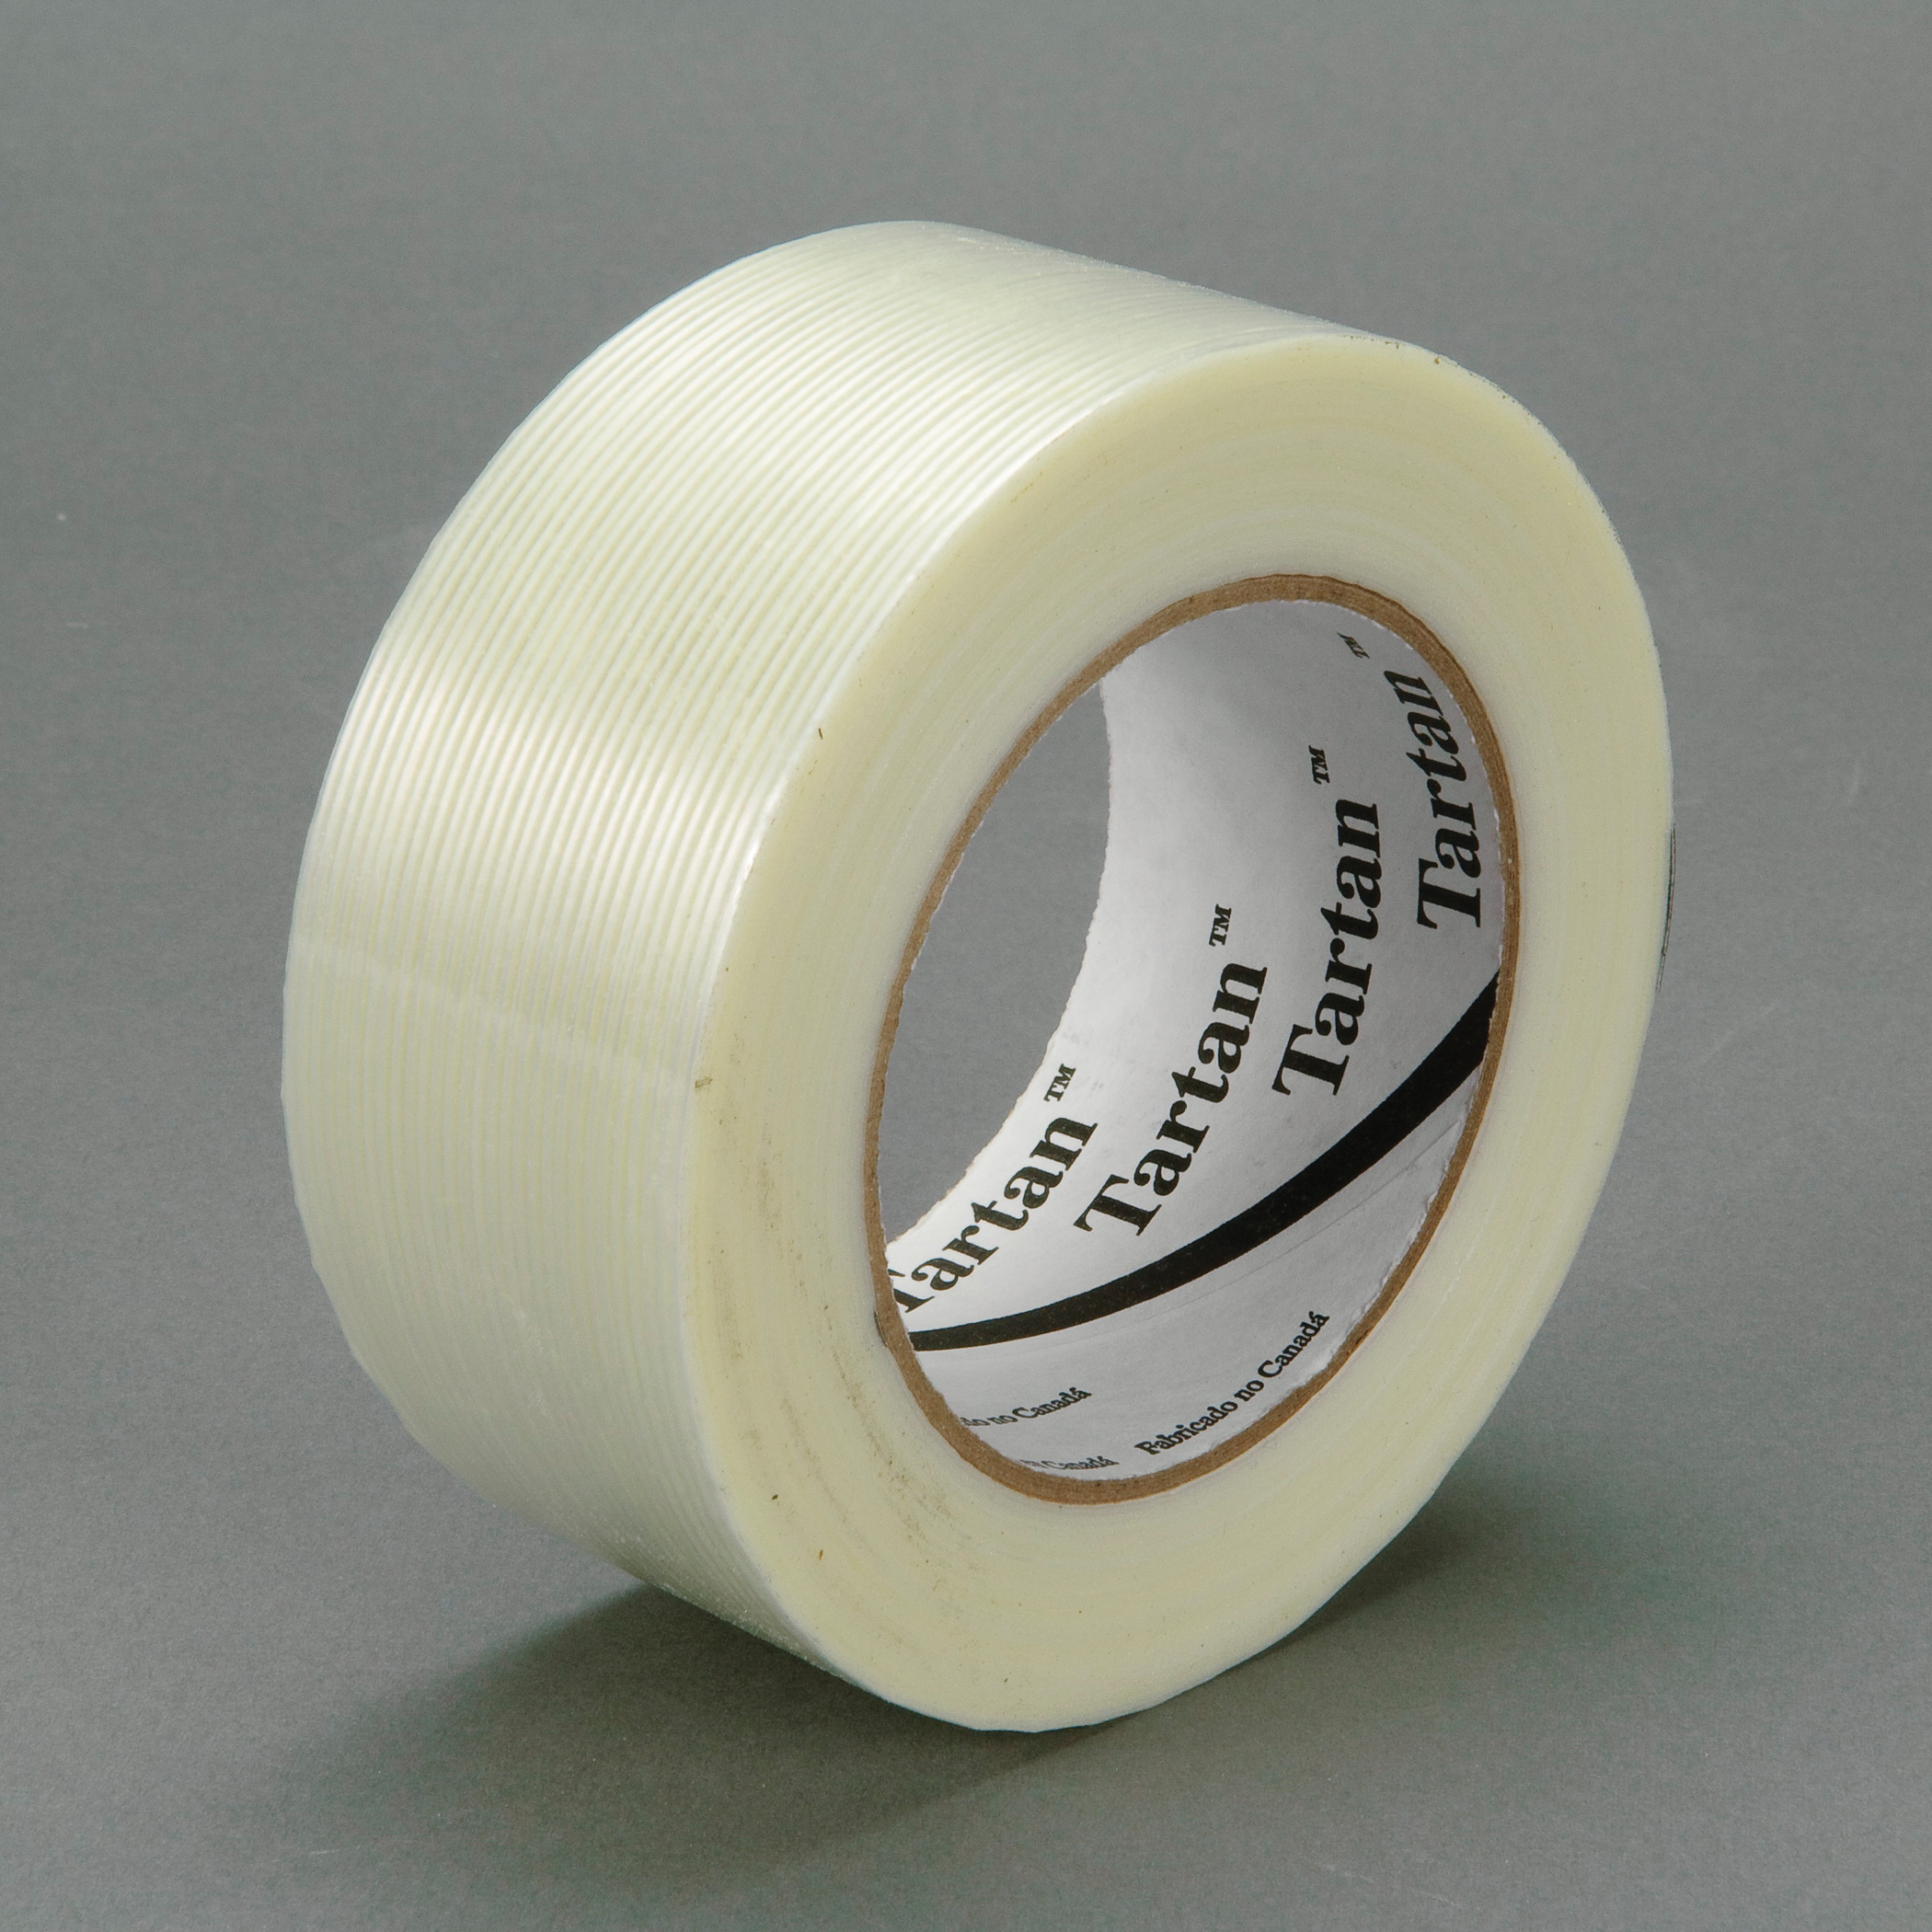 Tartan™ 021200-39476 High Strength Filament Tape, 55 m L x 72 mm W, 4 mil THK, Fiberglass Yarn Filament, Synthetic Rubber Adhesive, Polypropylene Film Backing, Clear